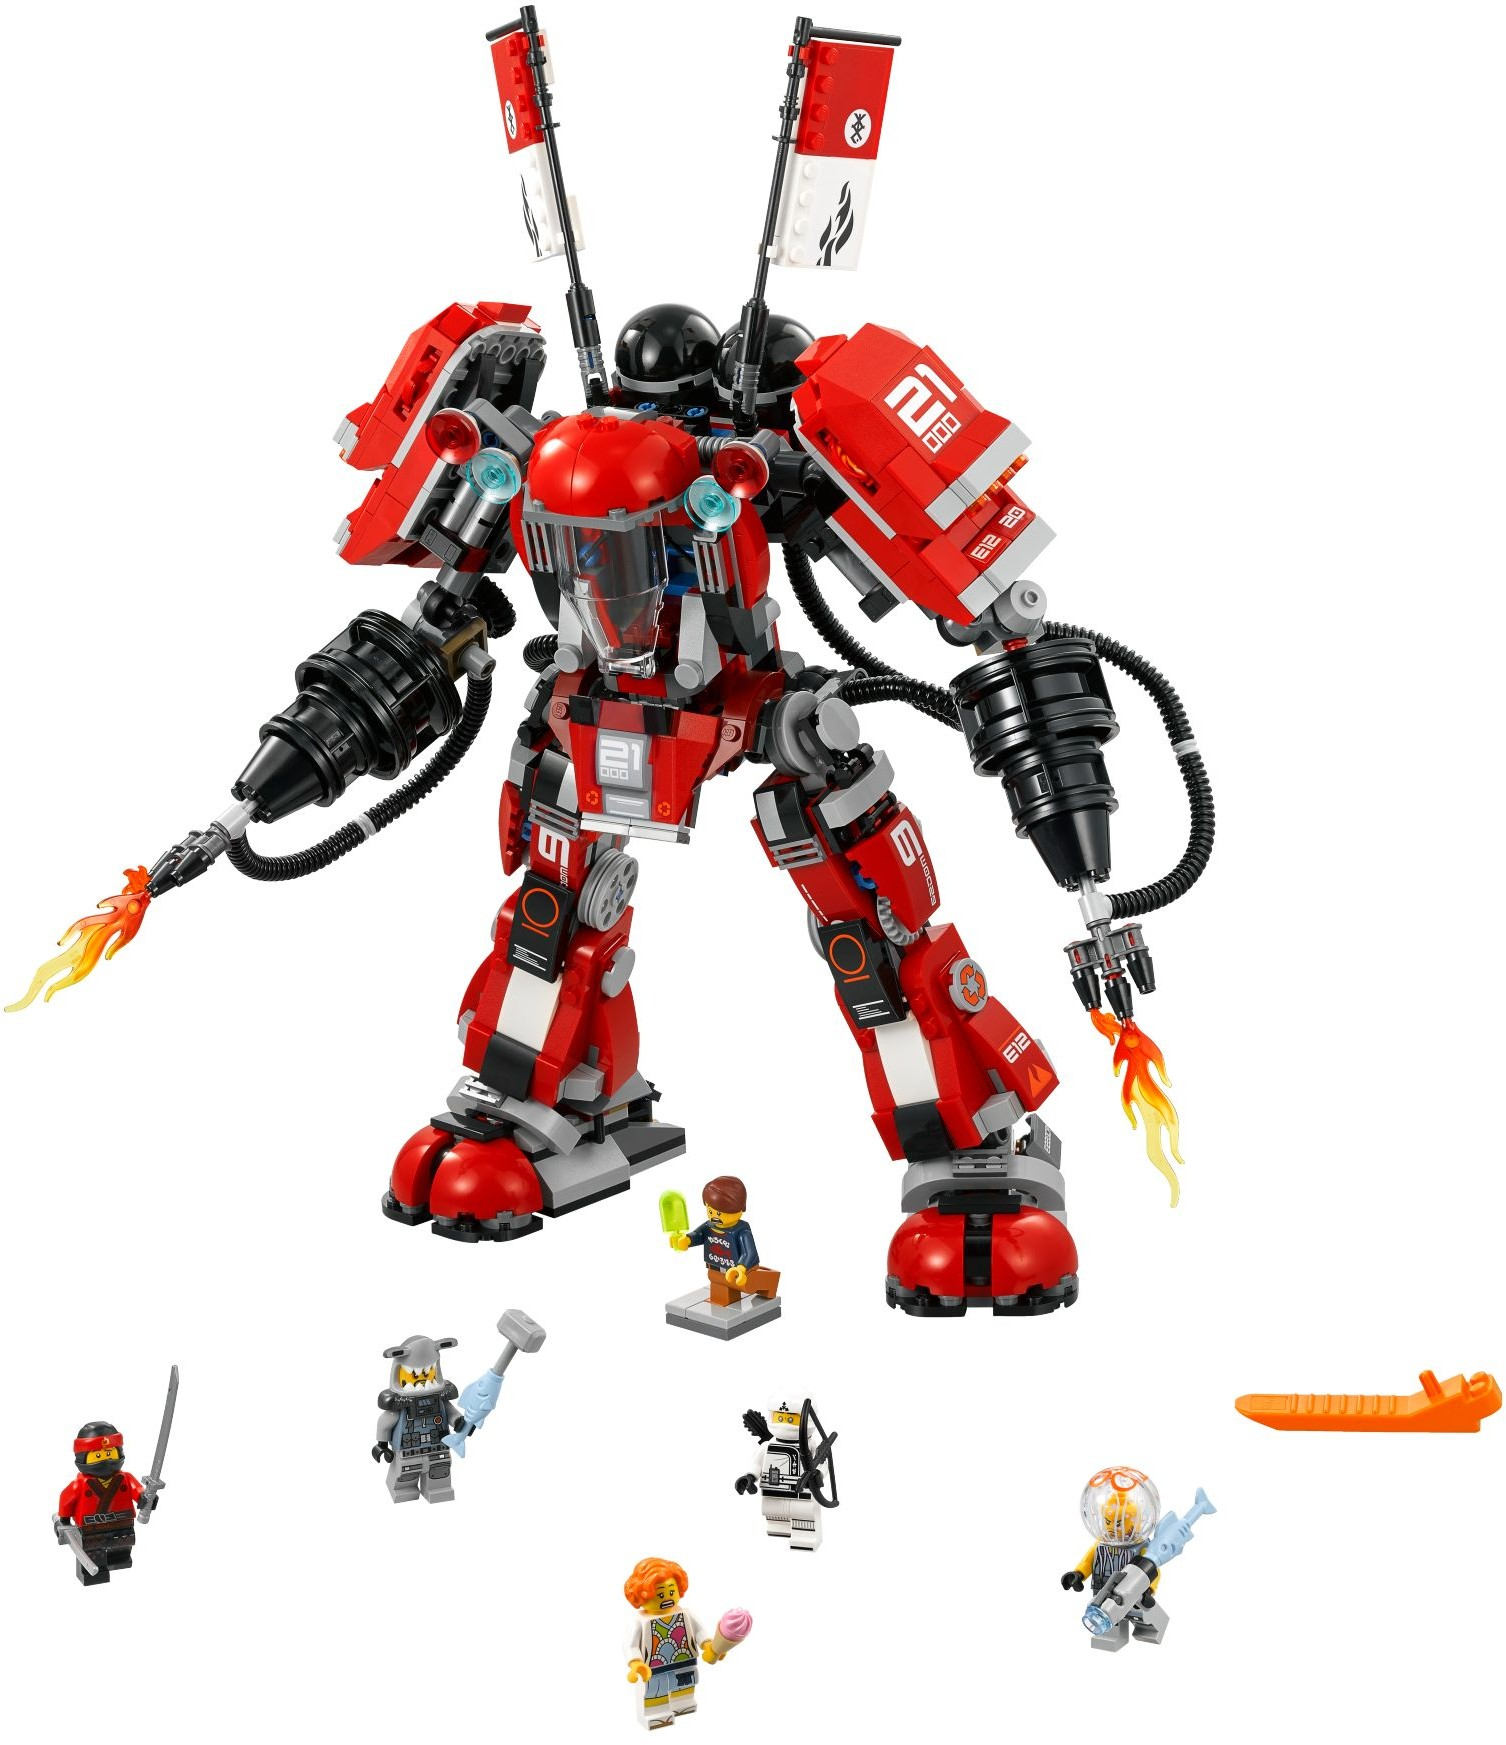 The lego ninjago movie brickset lego set guide and database - Lego ninjago logo ...